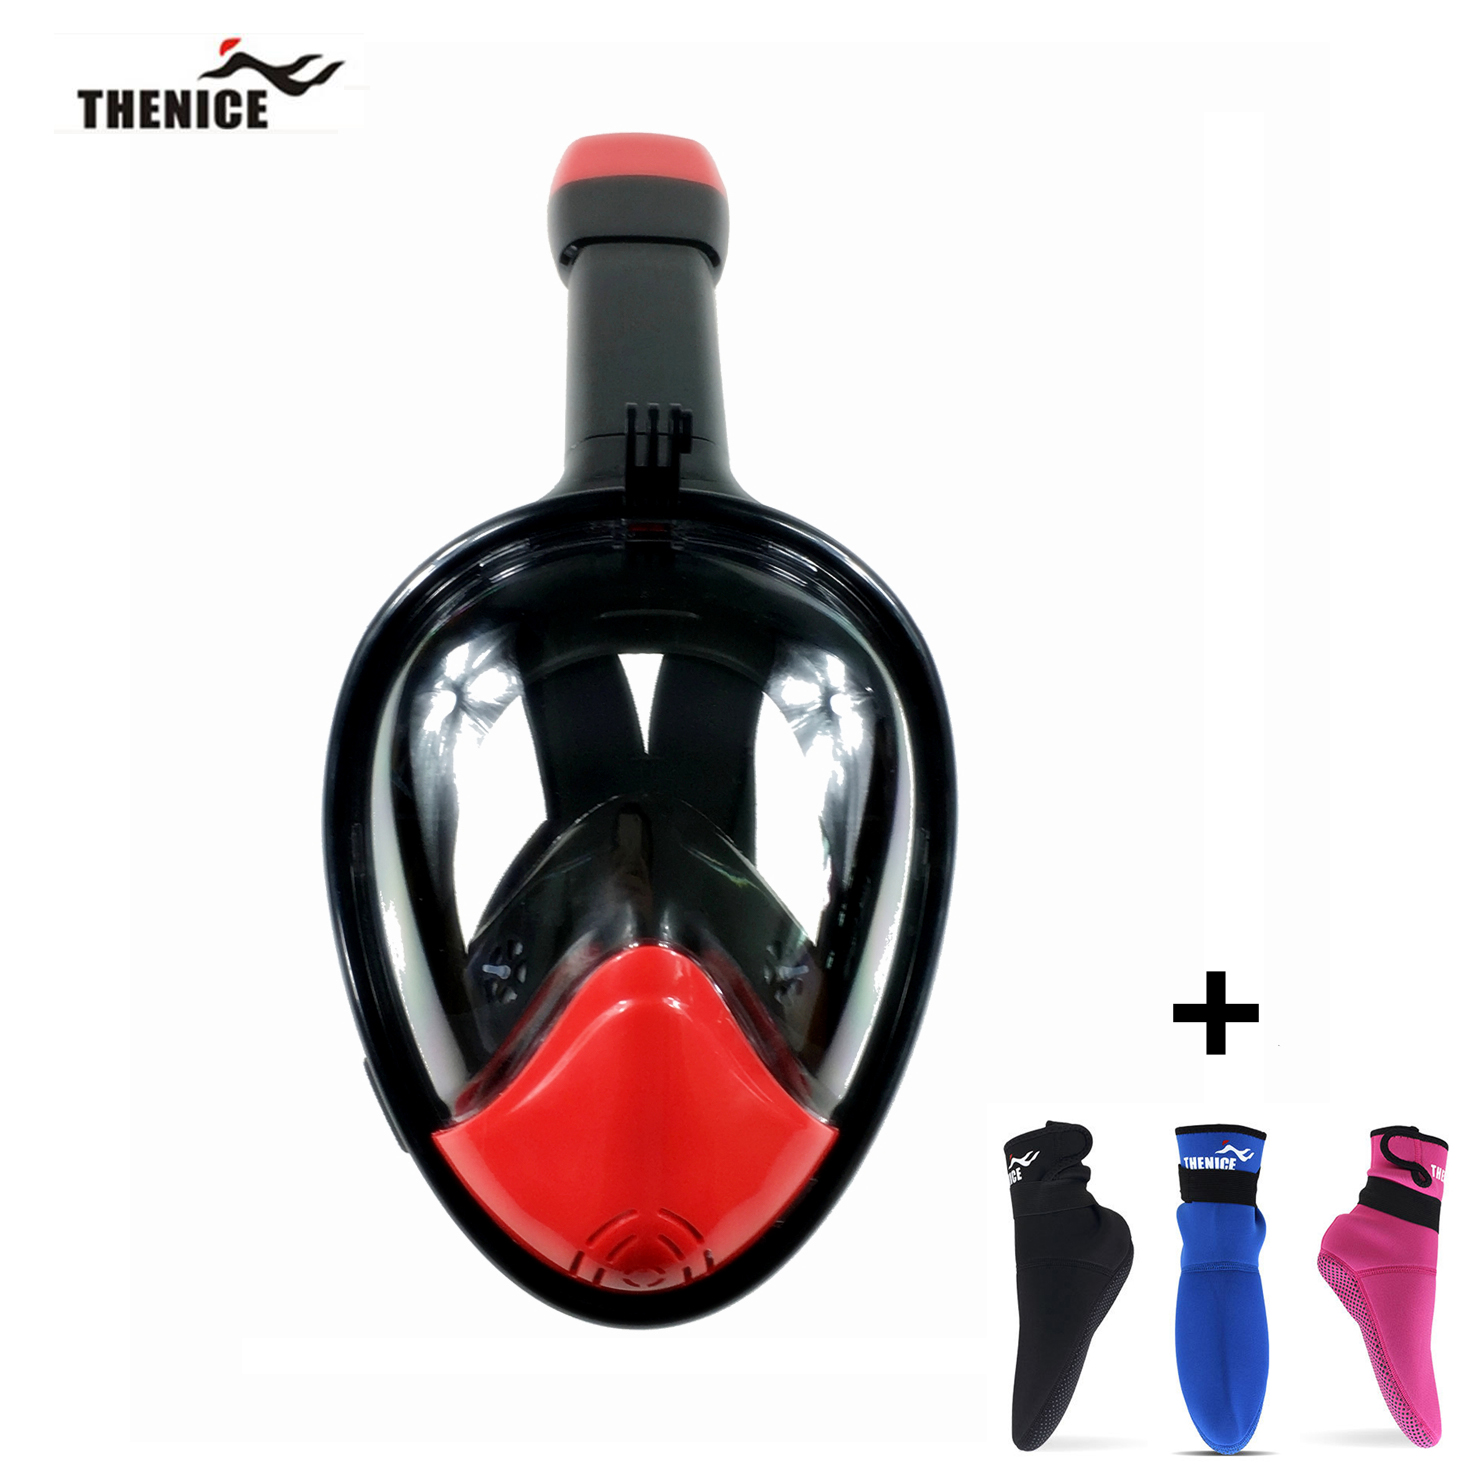 Thenice Scuba Diving Mask Full Face Easy Breath Dry Snorkeing Swimming Dive Snorkel Underwater Sport Equipment and Free Socks(China (Mainland))